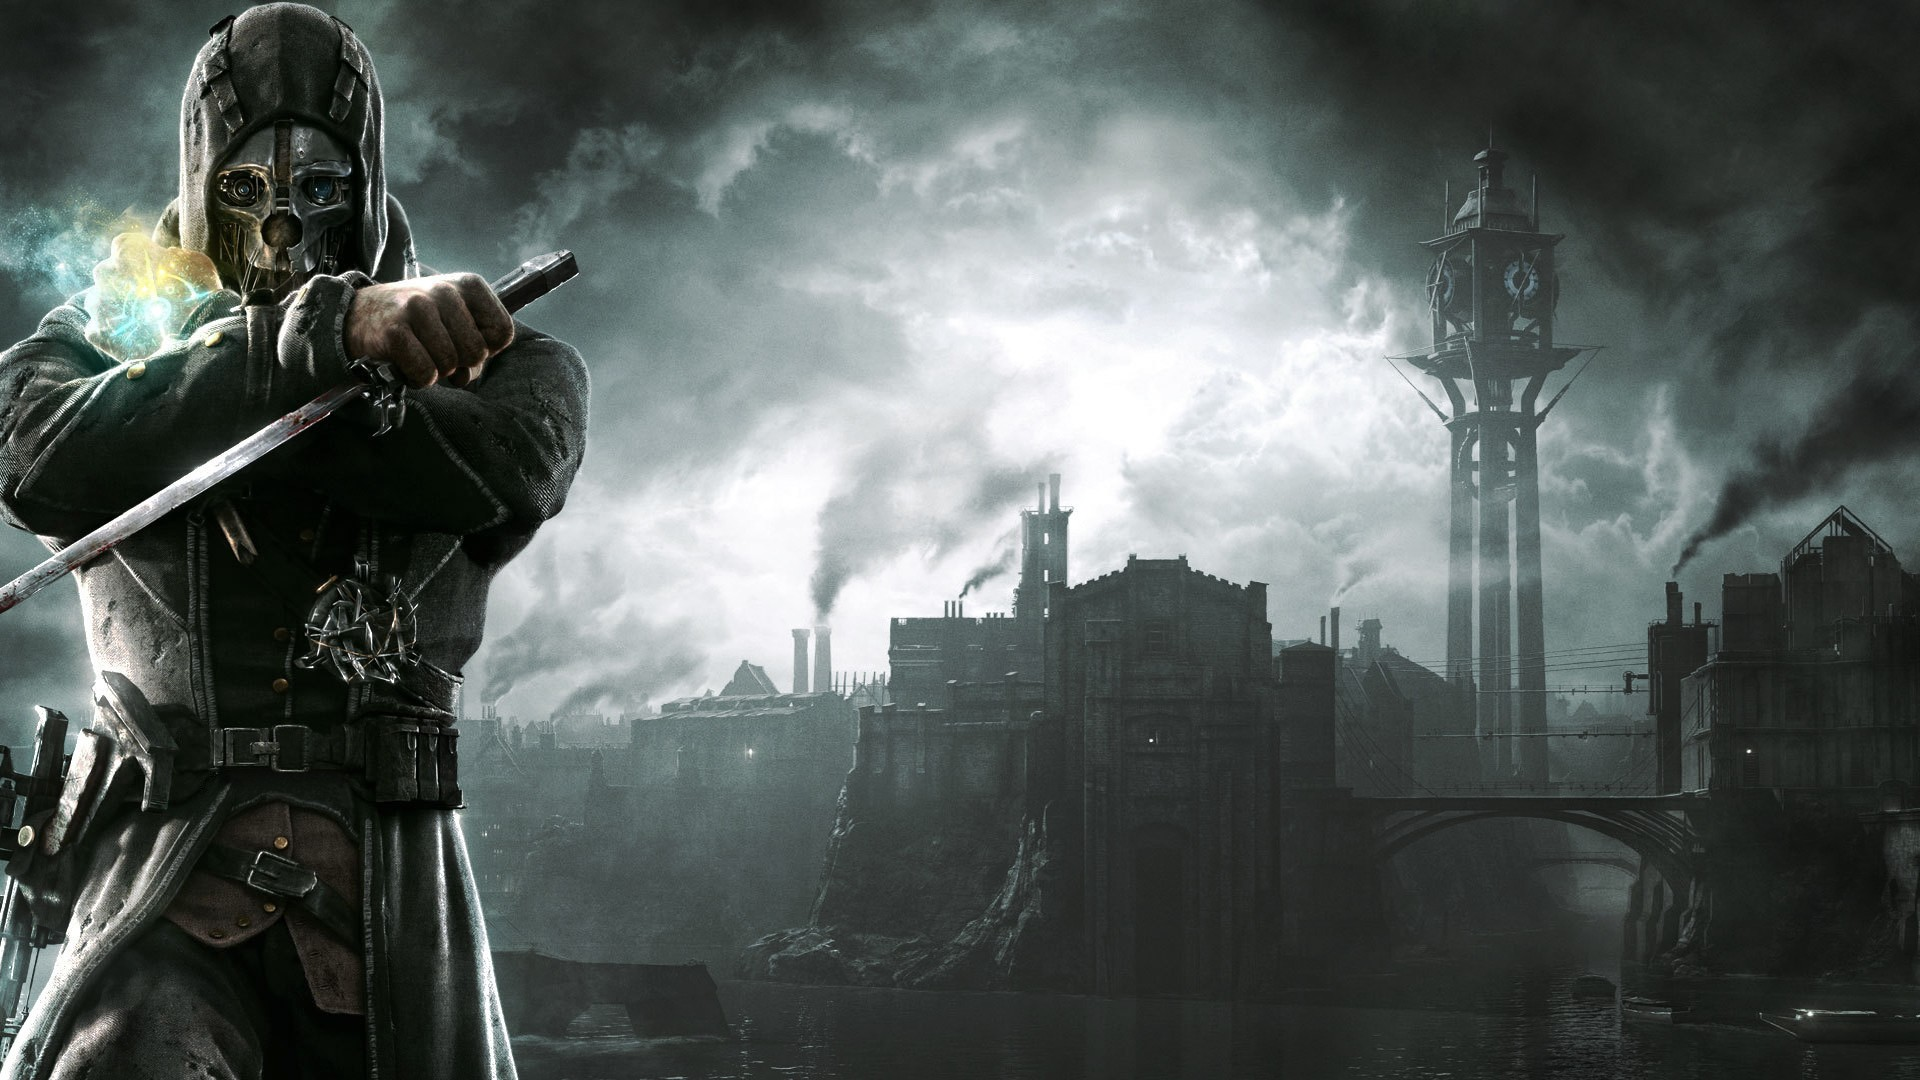 Dishonored Wallpaper for PC | Full HD Pictures